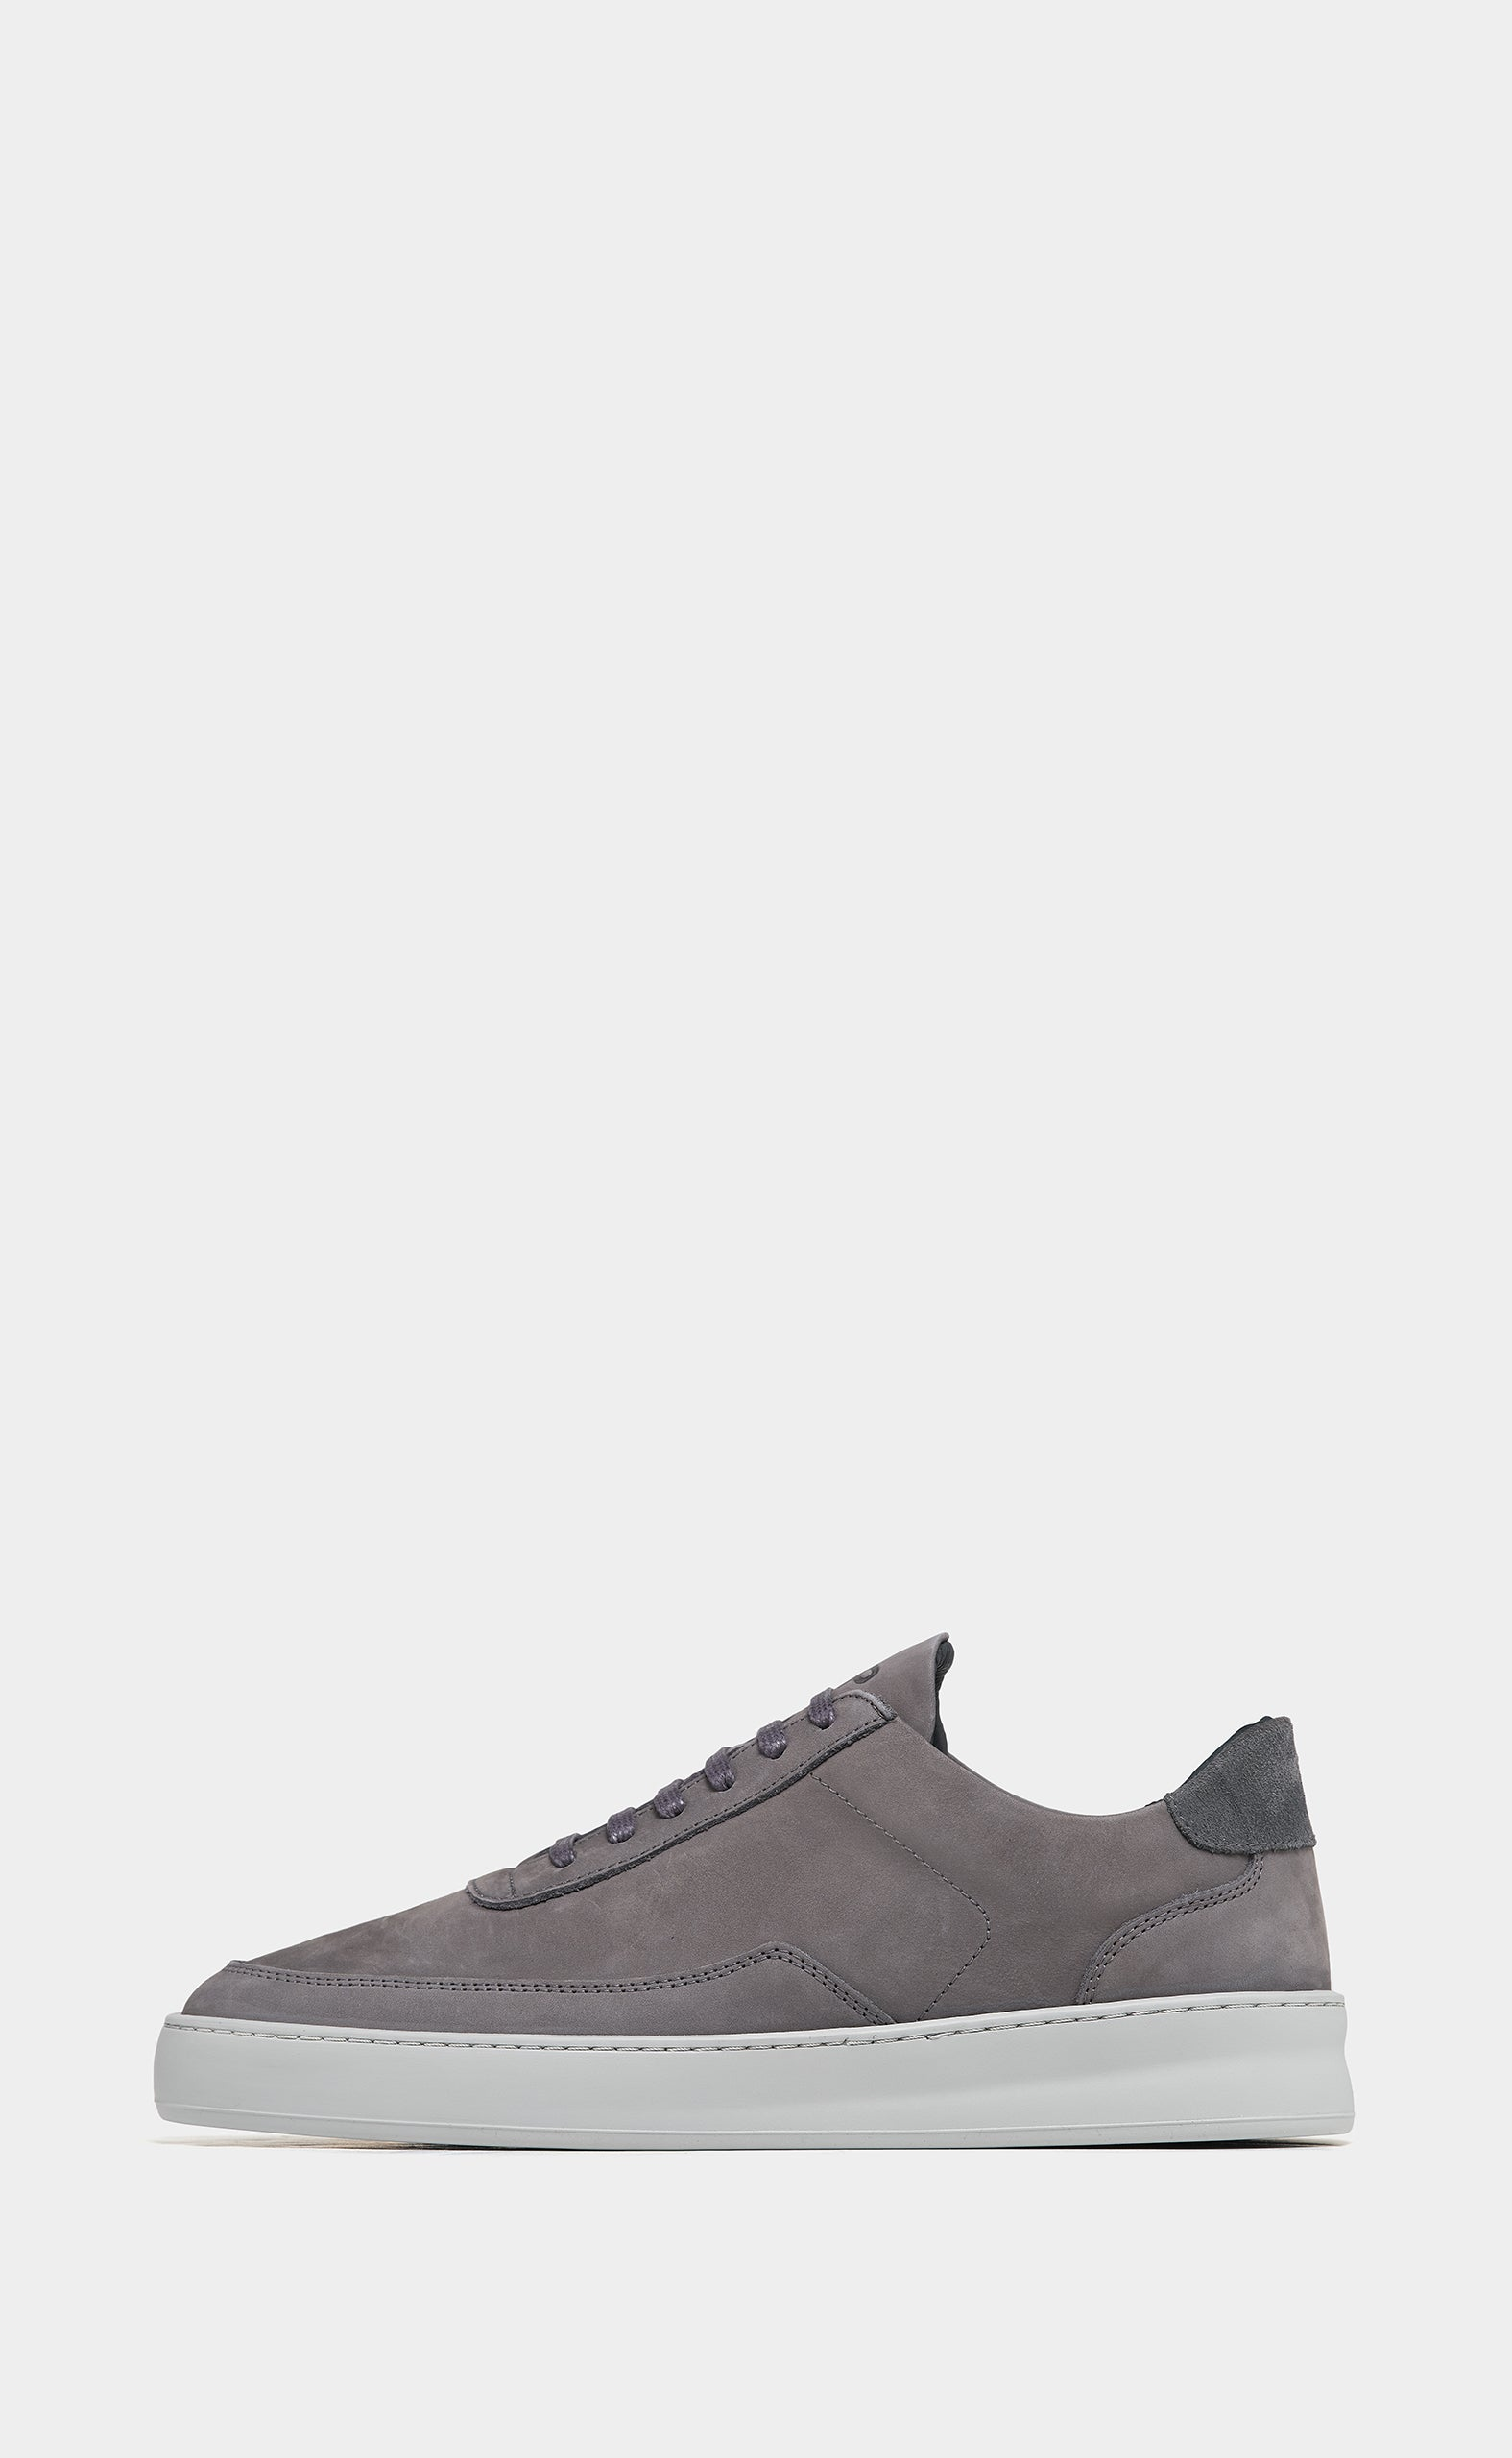 Low Mondo Plain Nardo Dark Grey